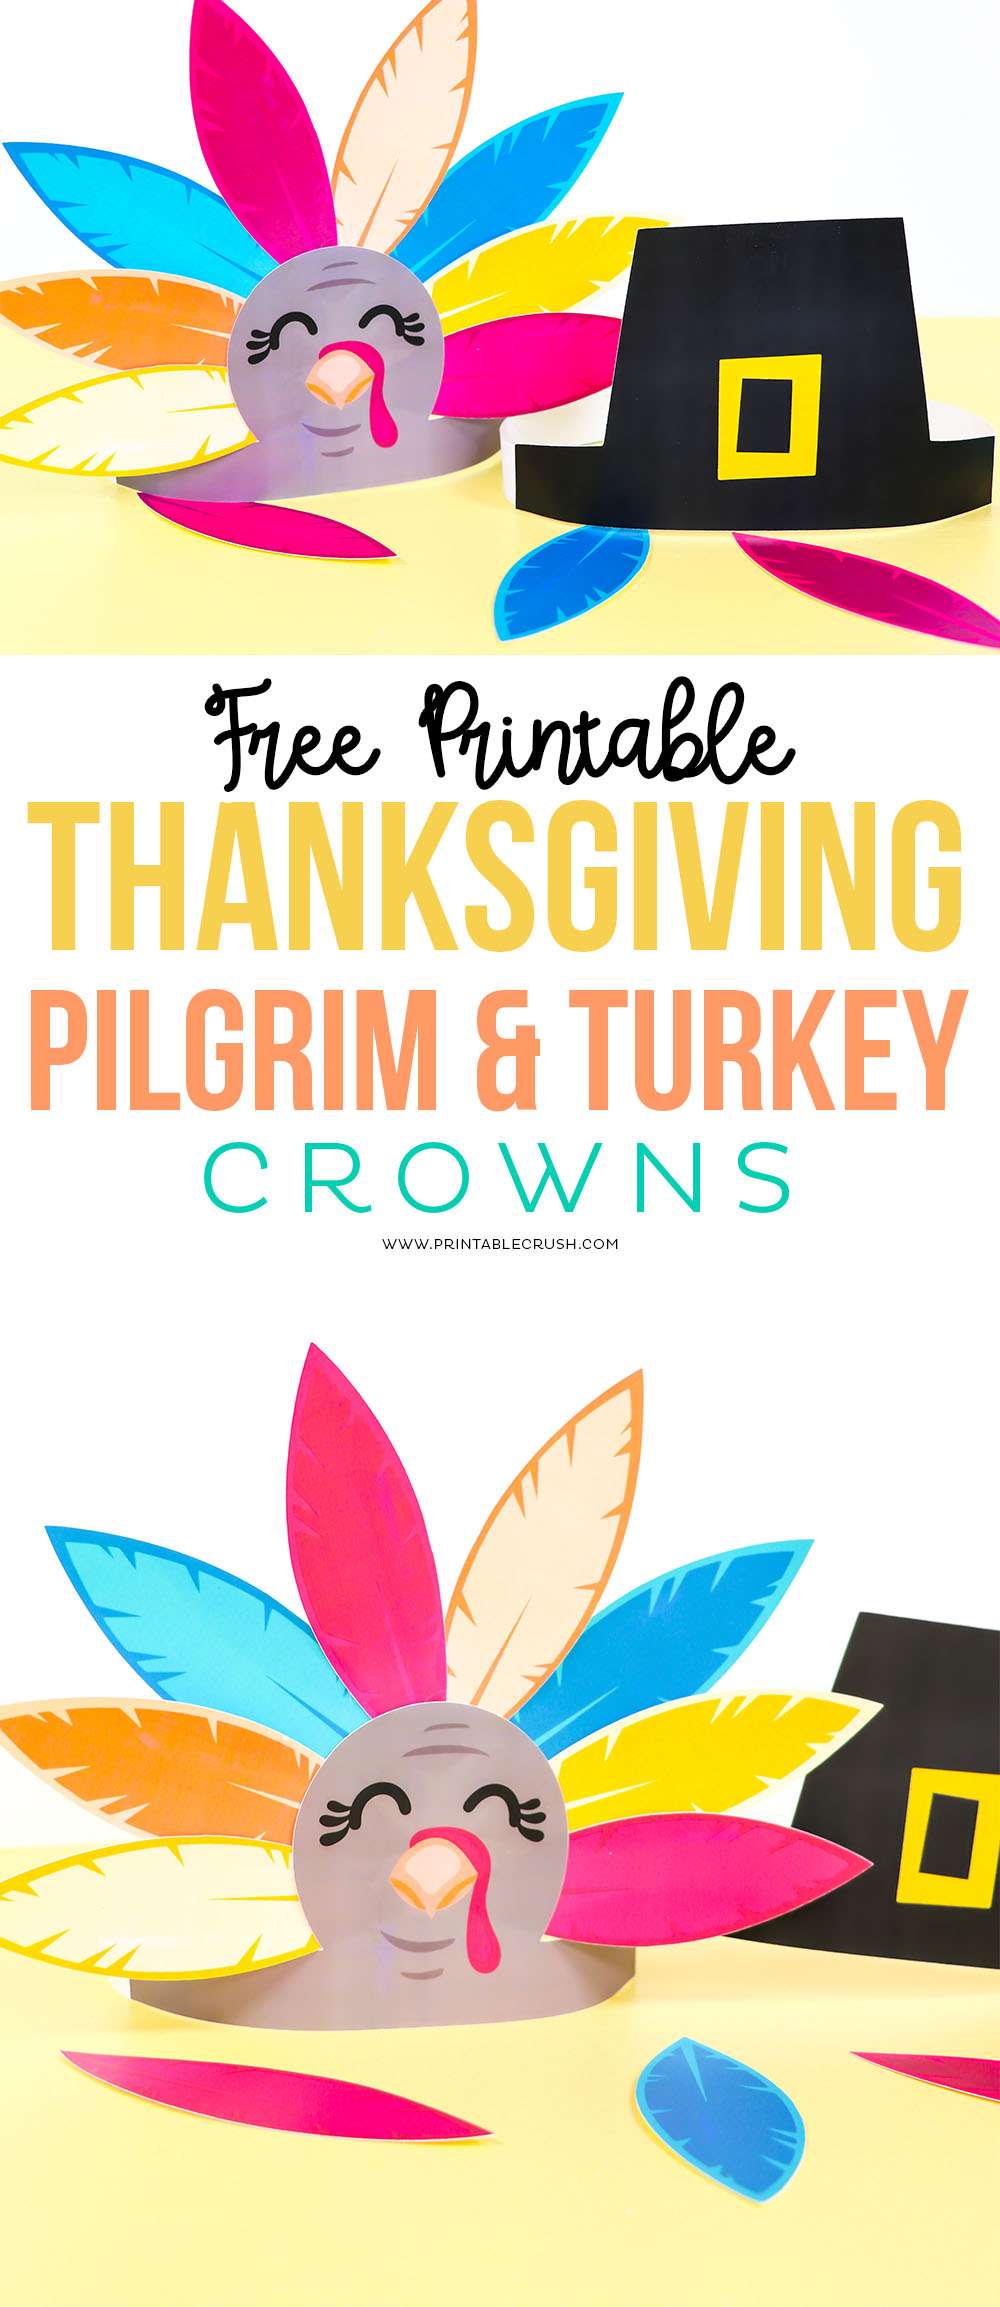 Free-Printable-Thanksgiving-Pilgrim-and-Turkey-Crowns